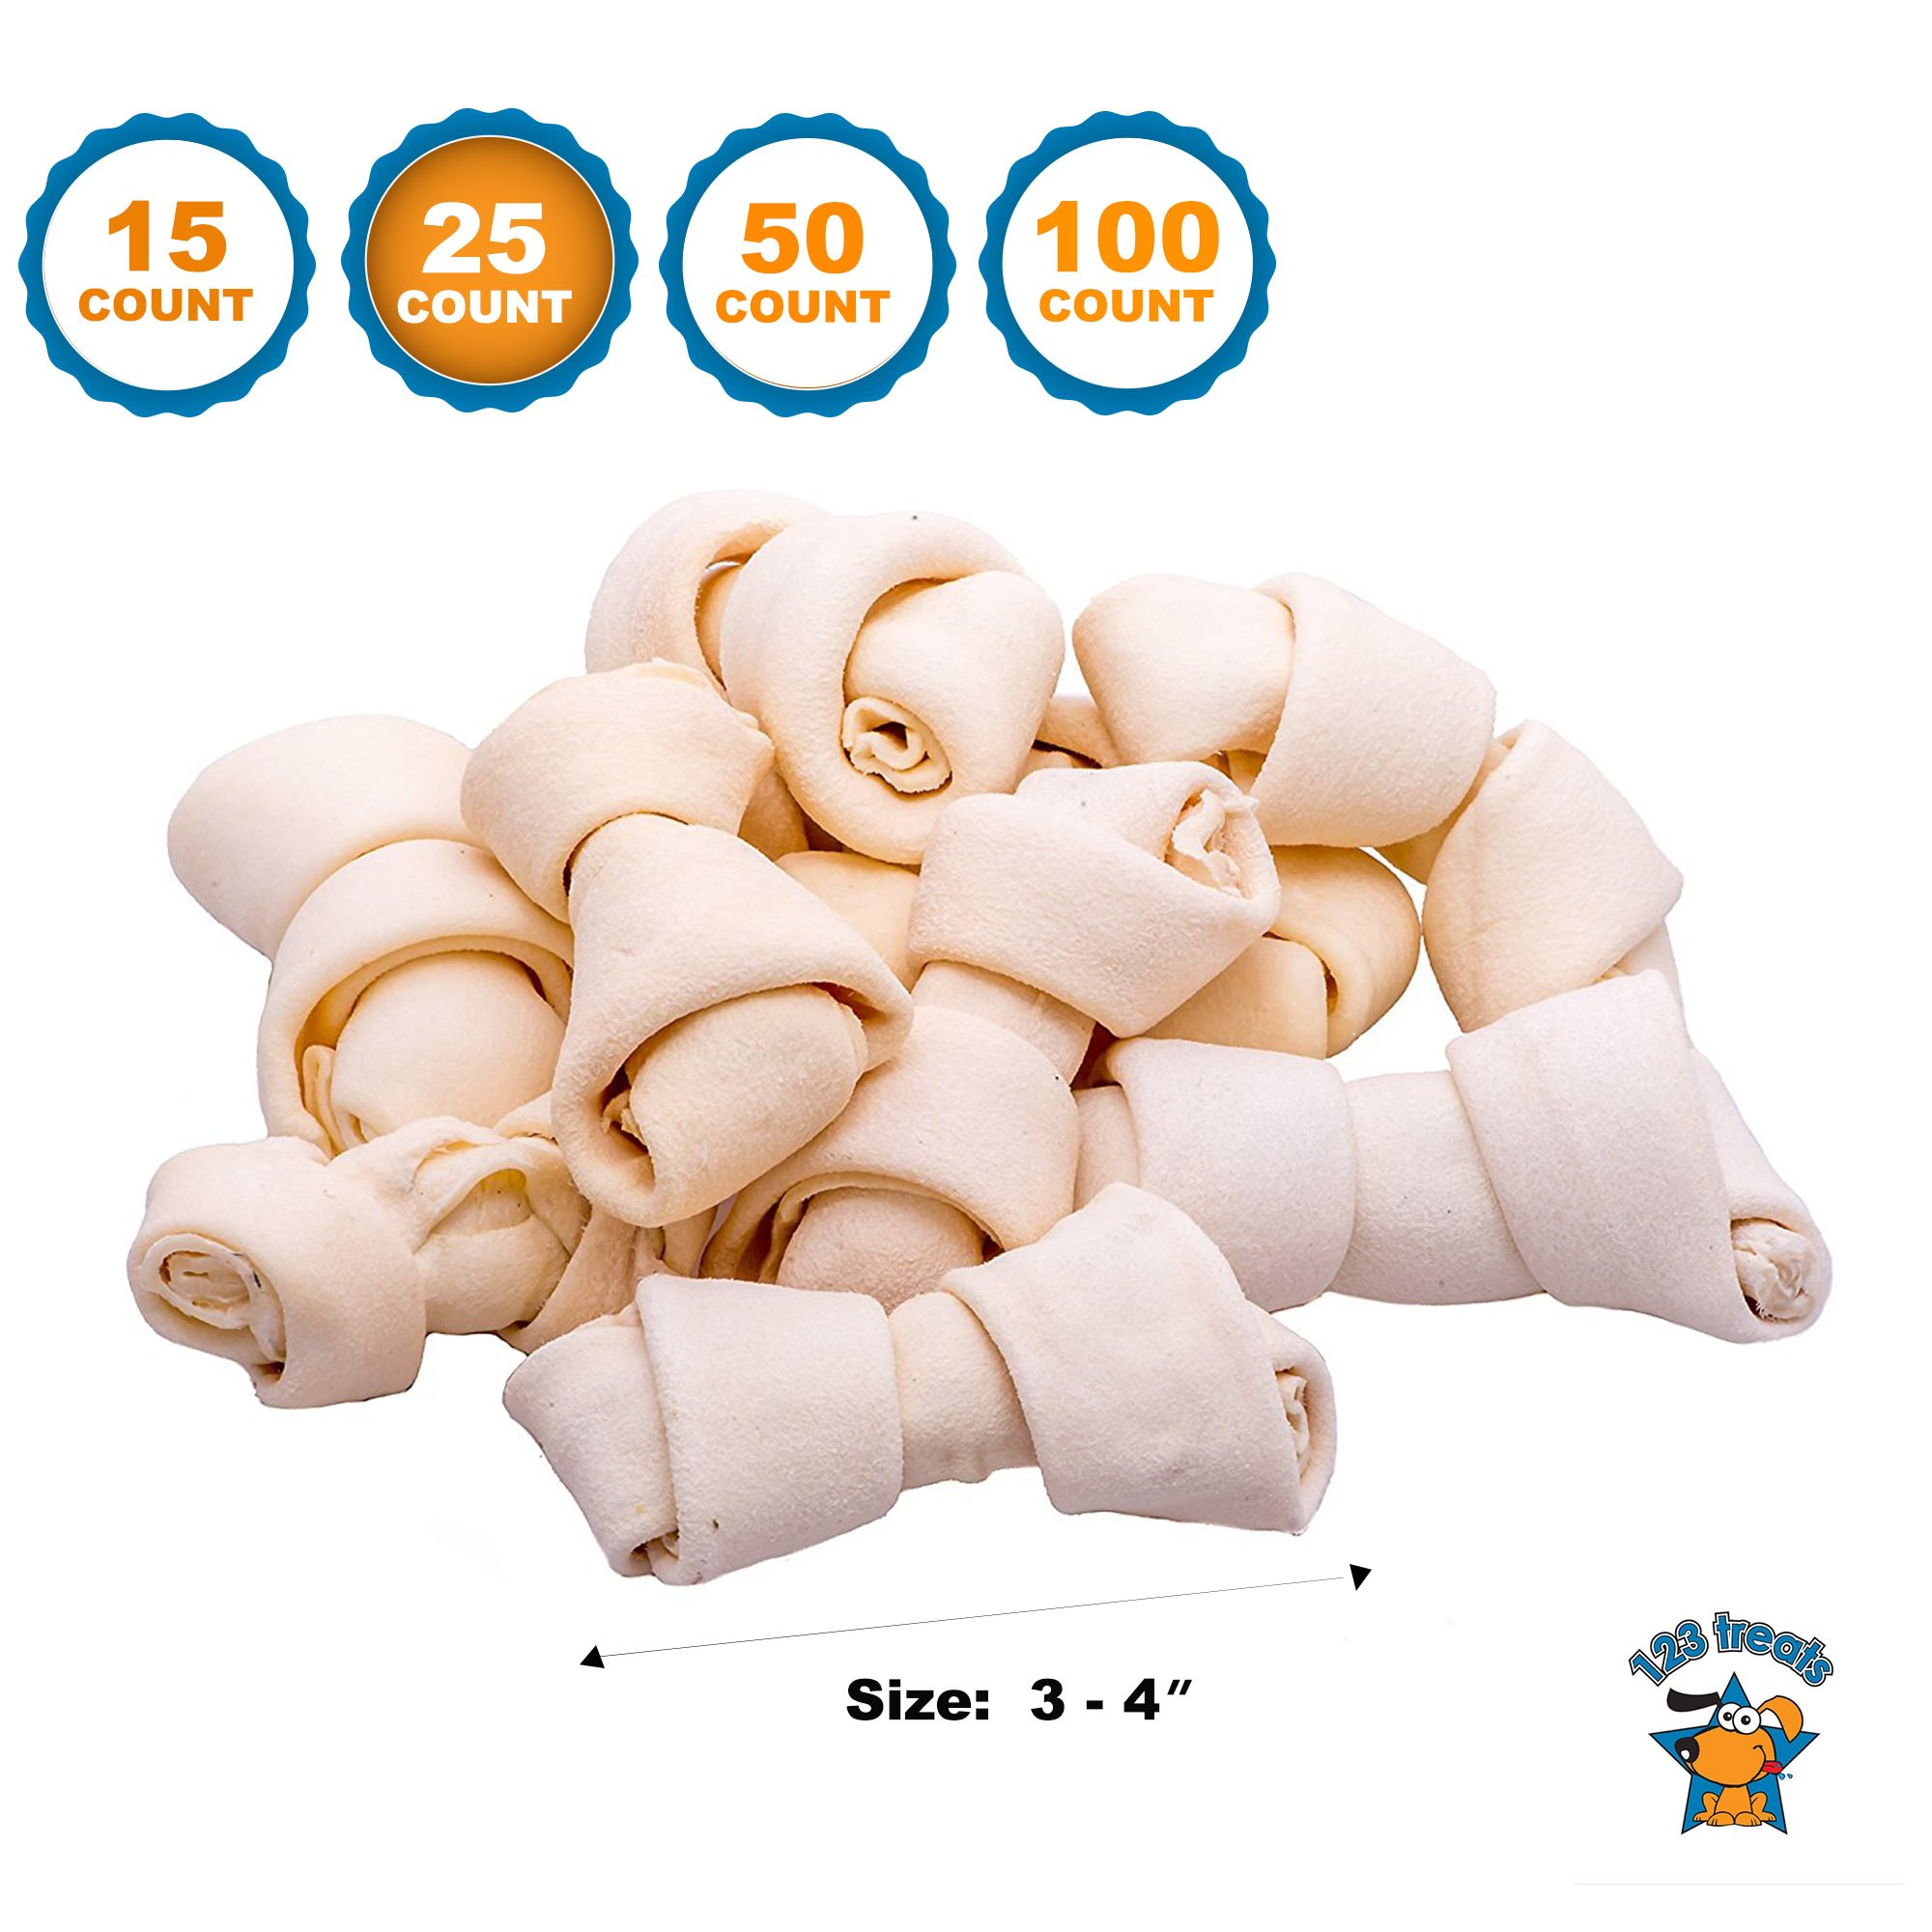 123 Treats | Rawhide Bones Chews 3-4'' (25 Count) Premium Rawhide Dog Bones | Free Range Grass Fed Cattle with No Hormones, Additives or Chemicals